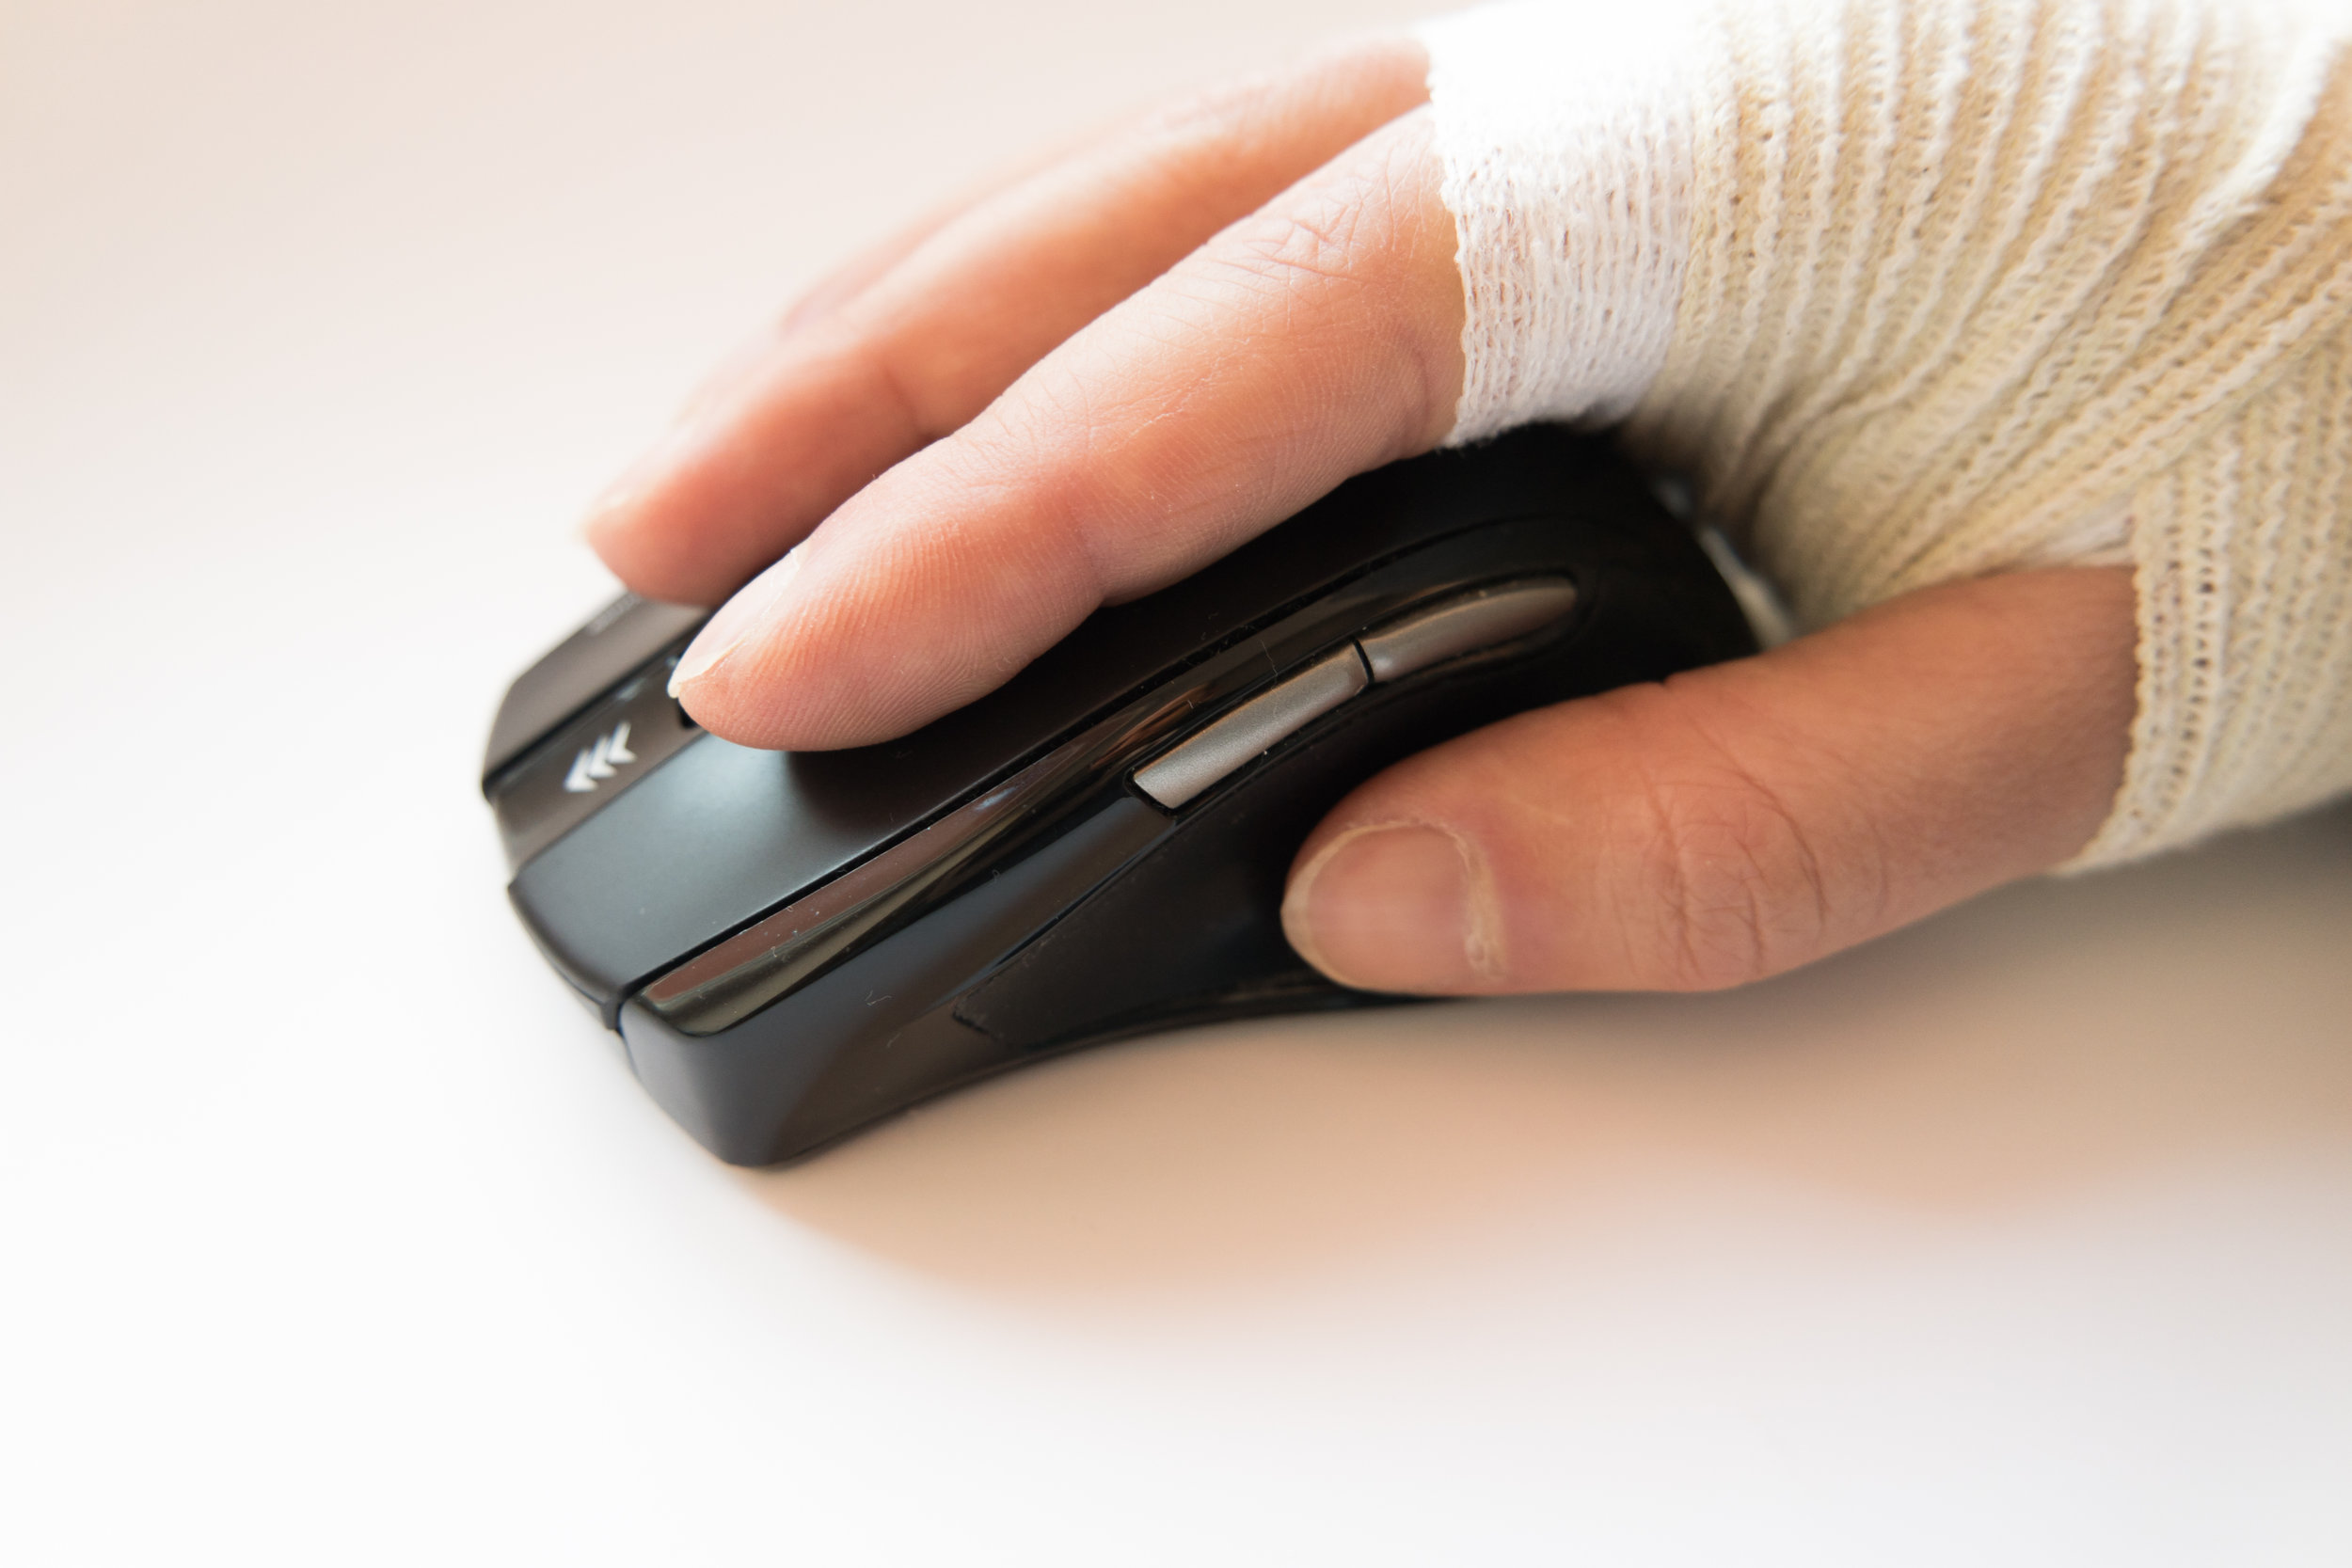 stock-photo-tied-hand-sick-and-sore-on-computer-mouse-carpal-inflammation-684773305.jpg